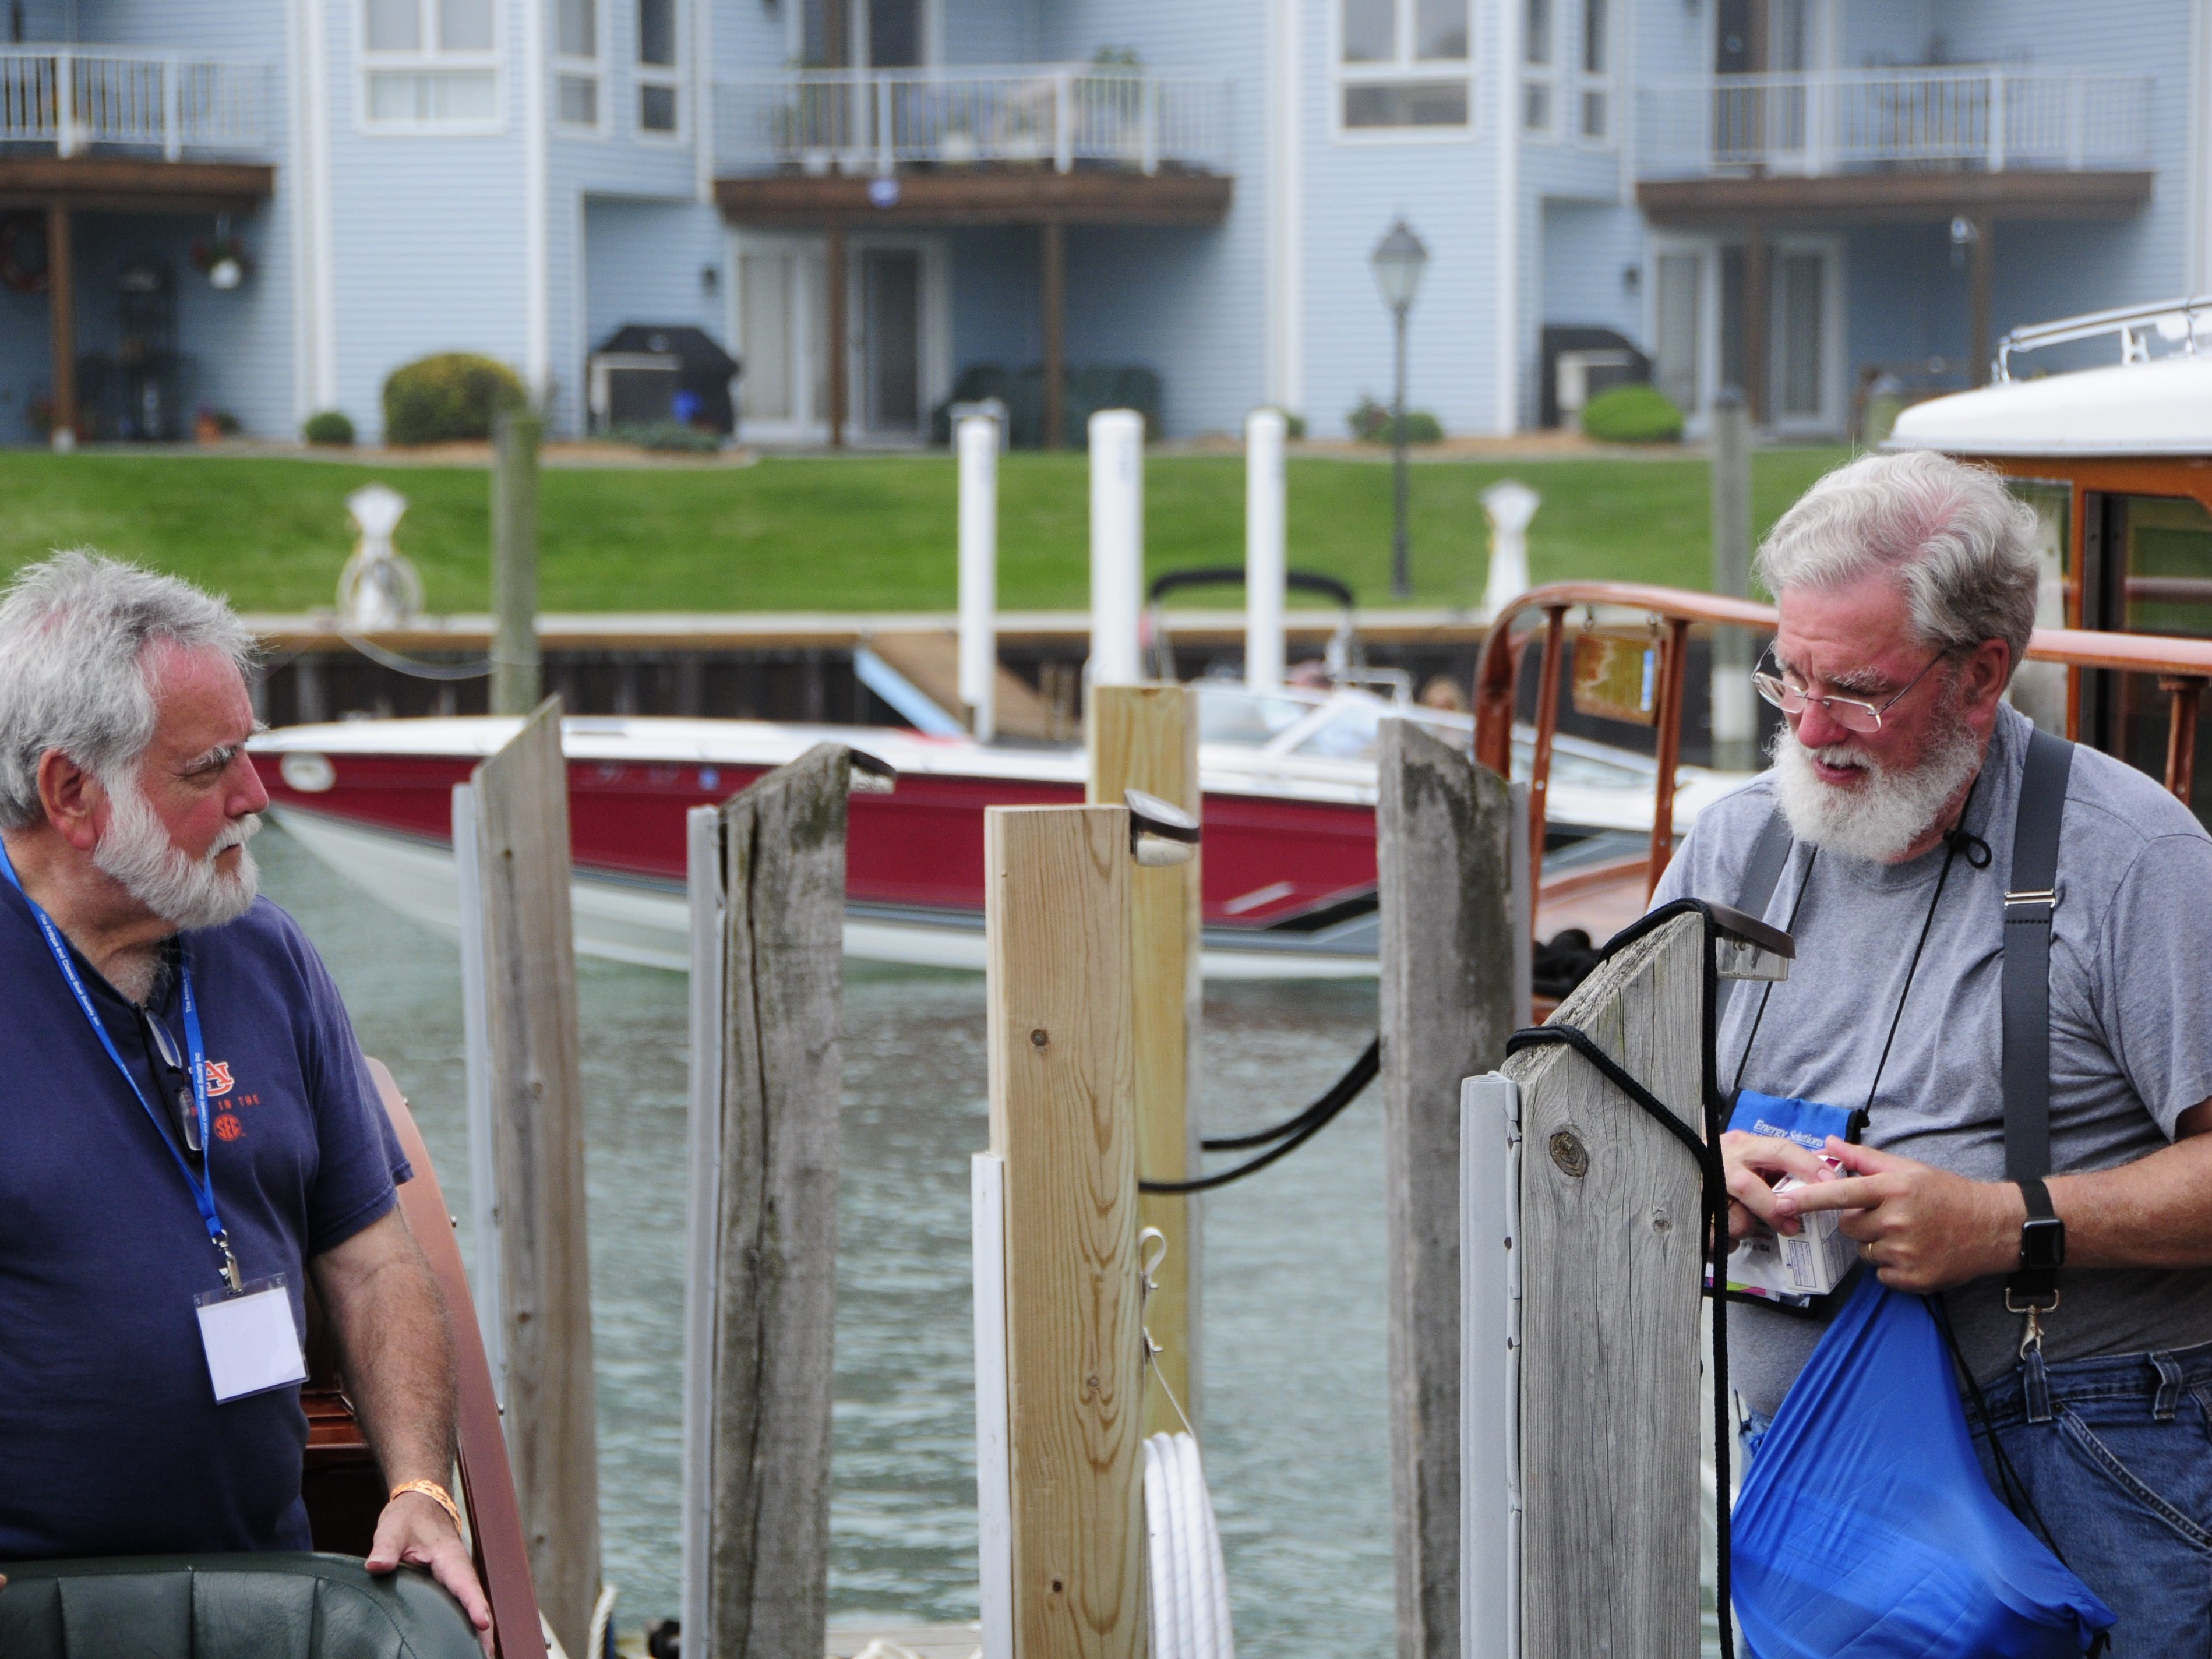 Ray Gaines and Drew Lindsey, of Atlanta, Georgia, were aboard the Rumrunner during the Antique and Classic Boat Society International Boat Show on Saturday, Sept. 15, 2018.